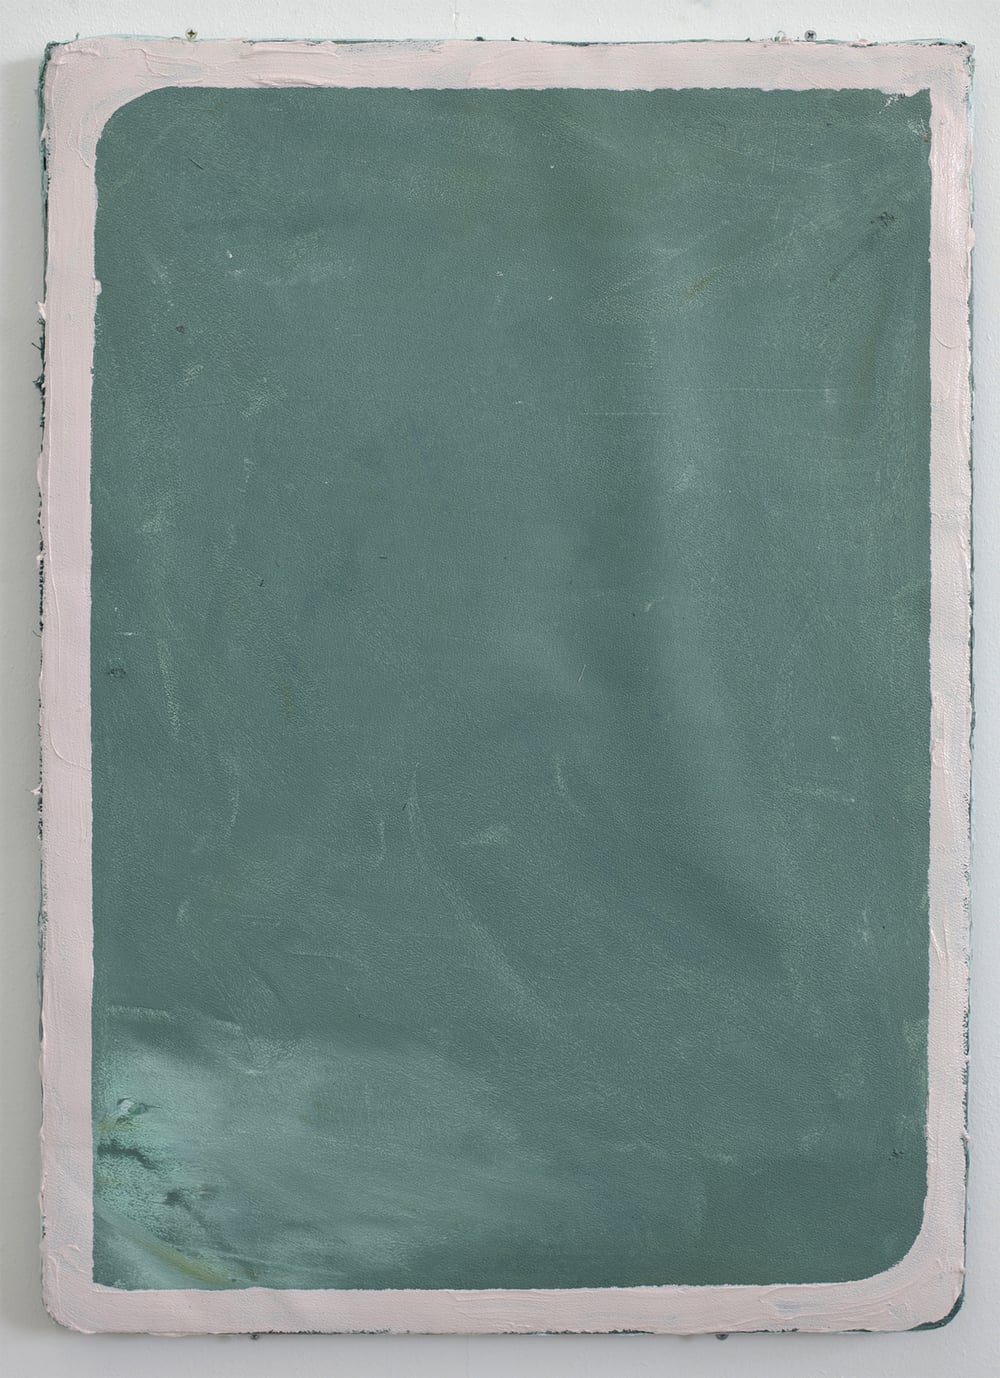 'Untitled' 2013 Oil and household paint on noticeboard 64 x 70 x 8cm